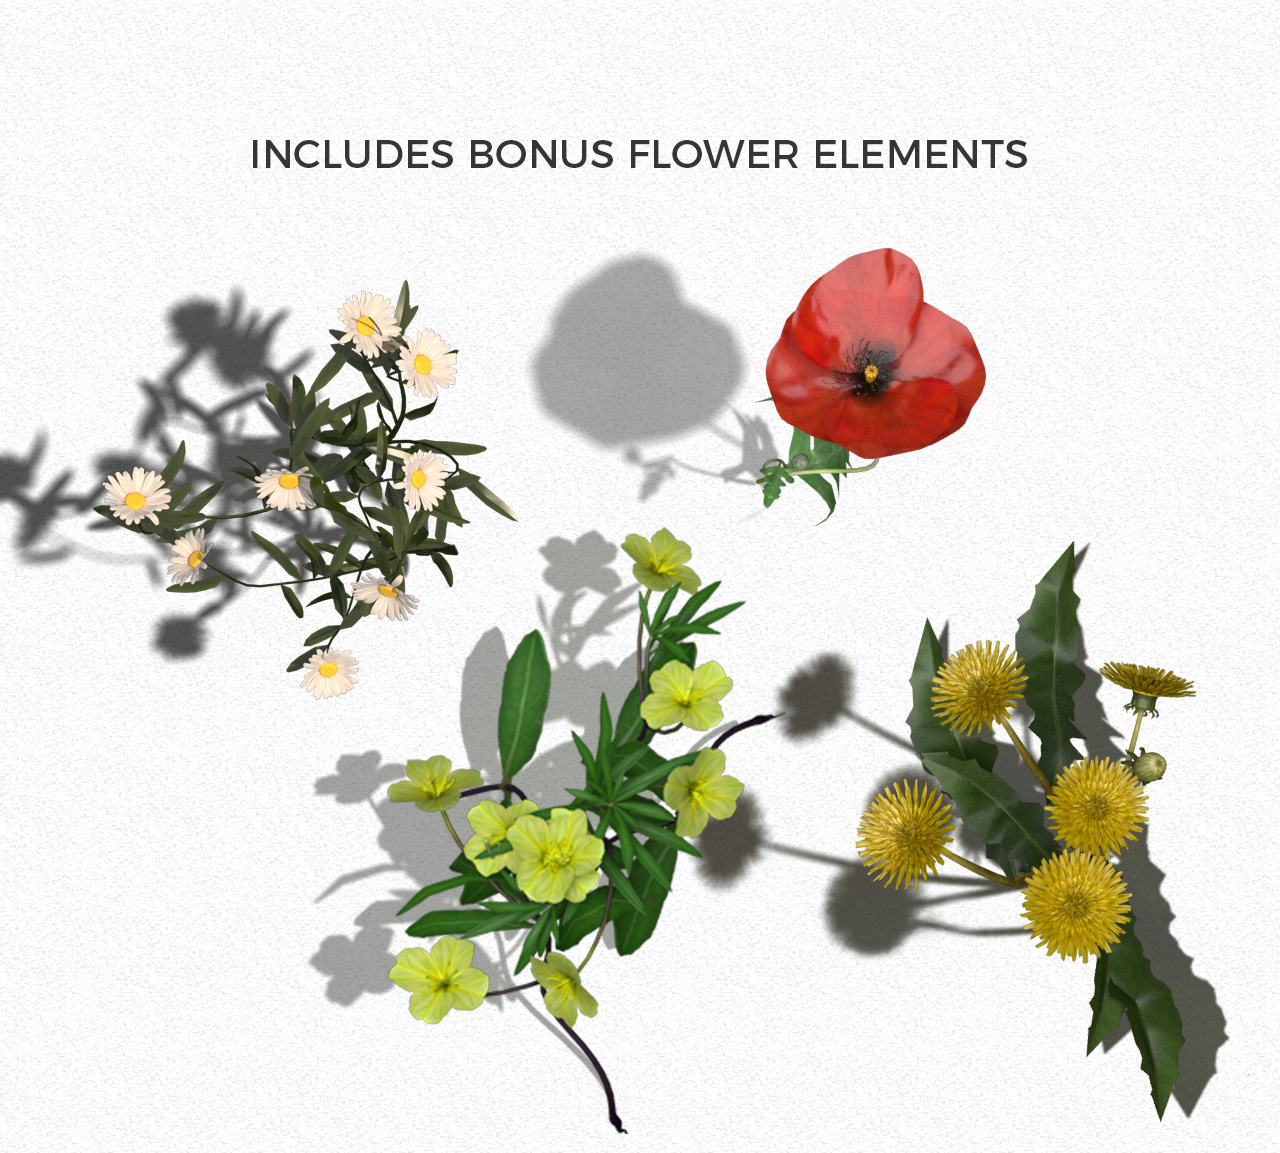 Bonus Flower Elements